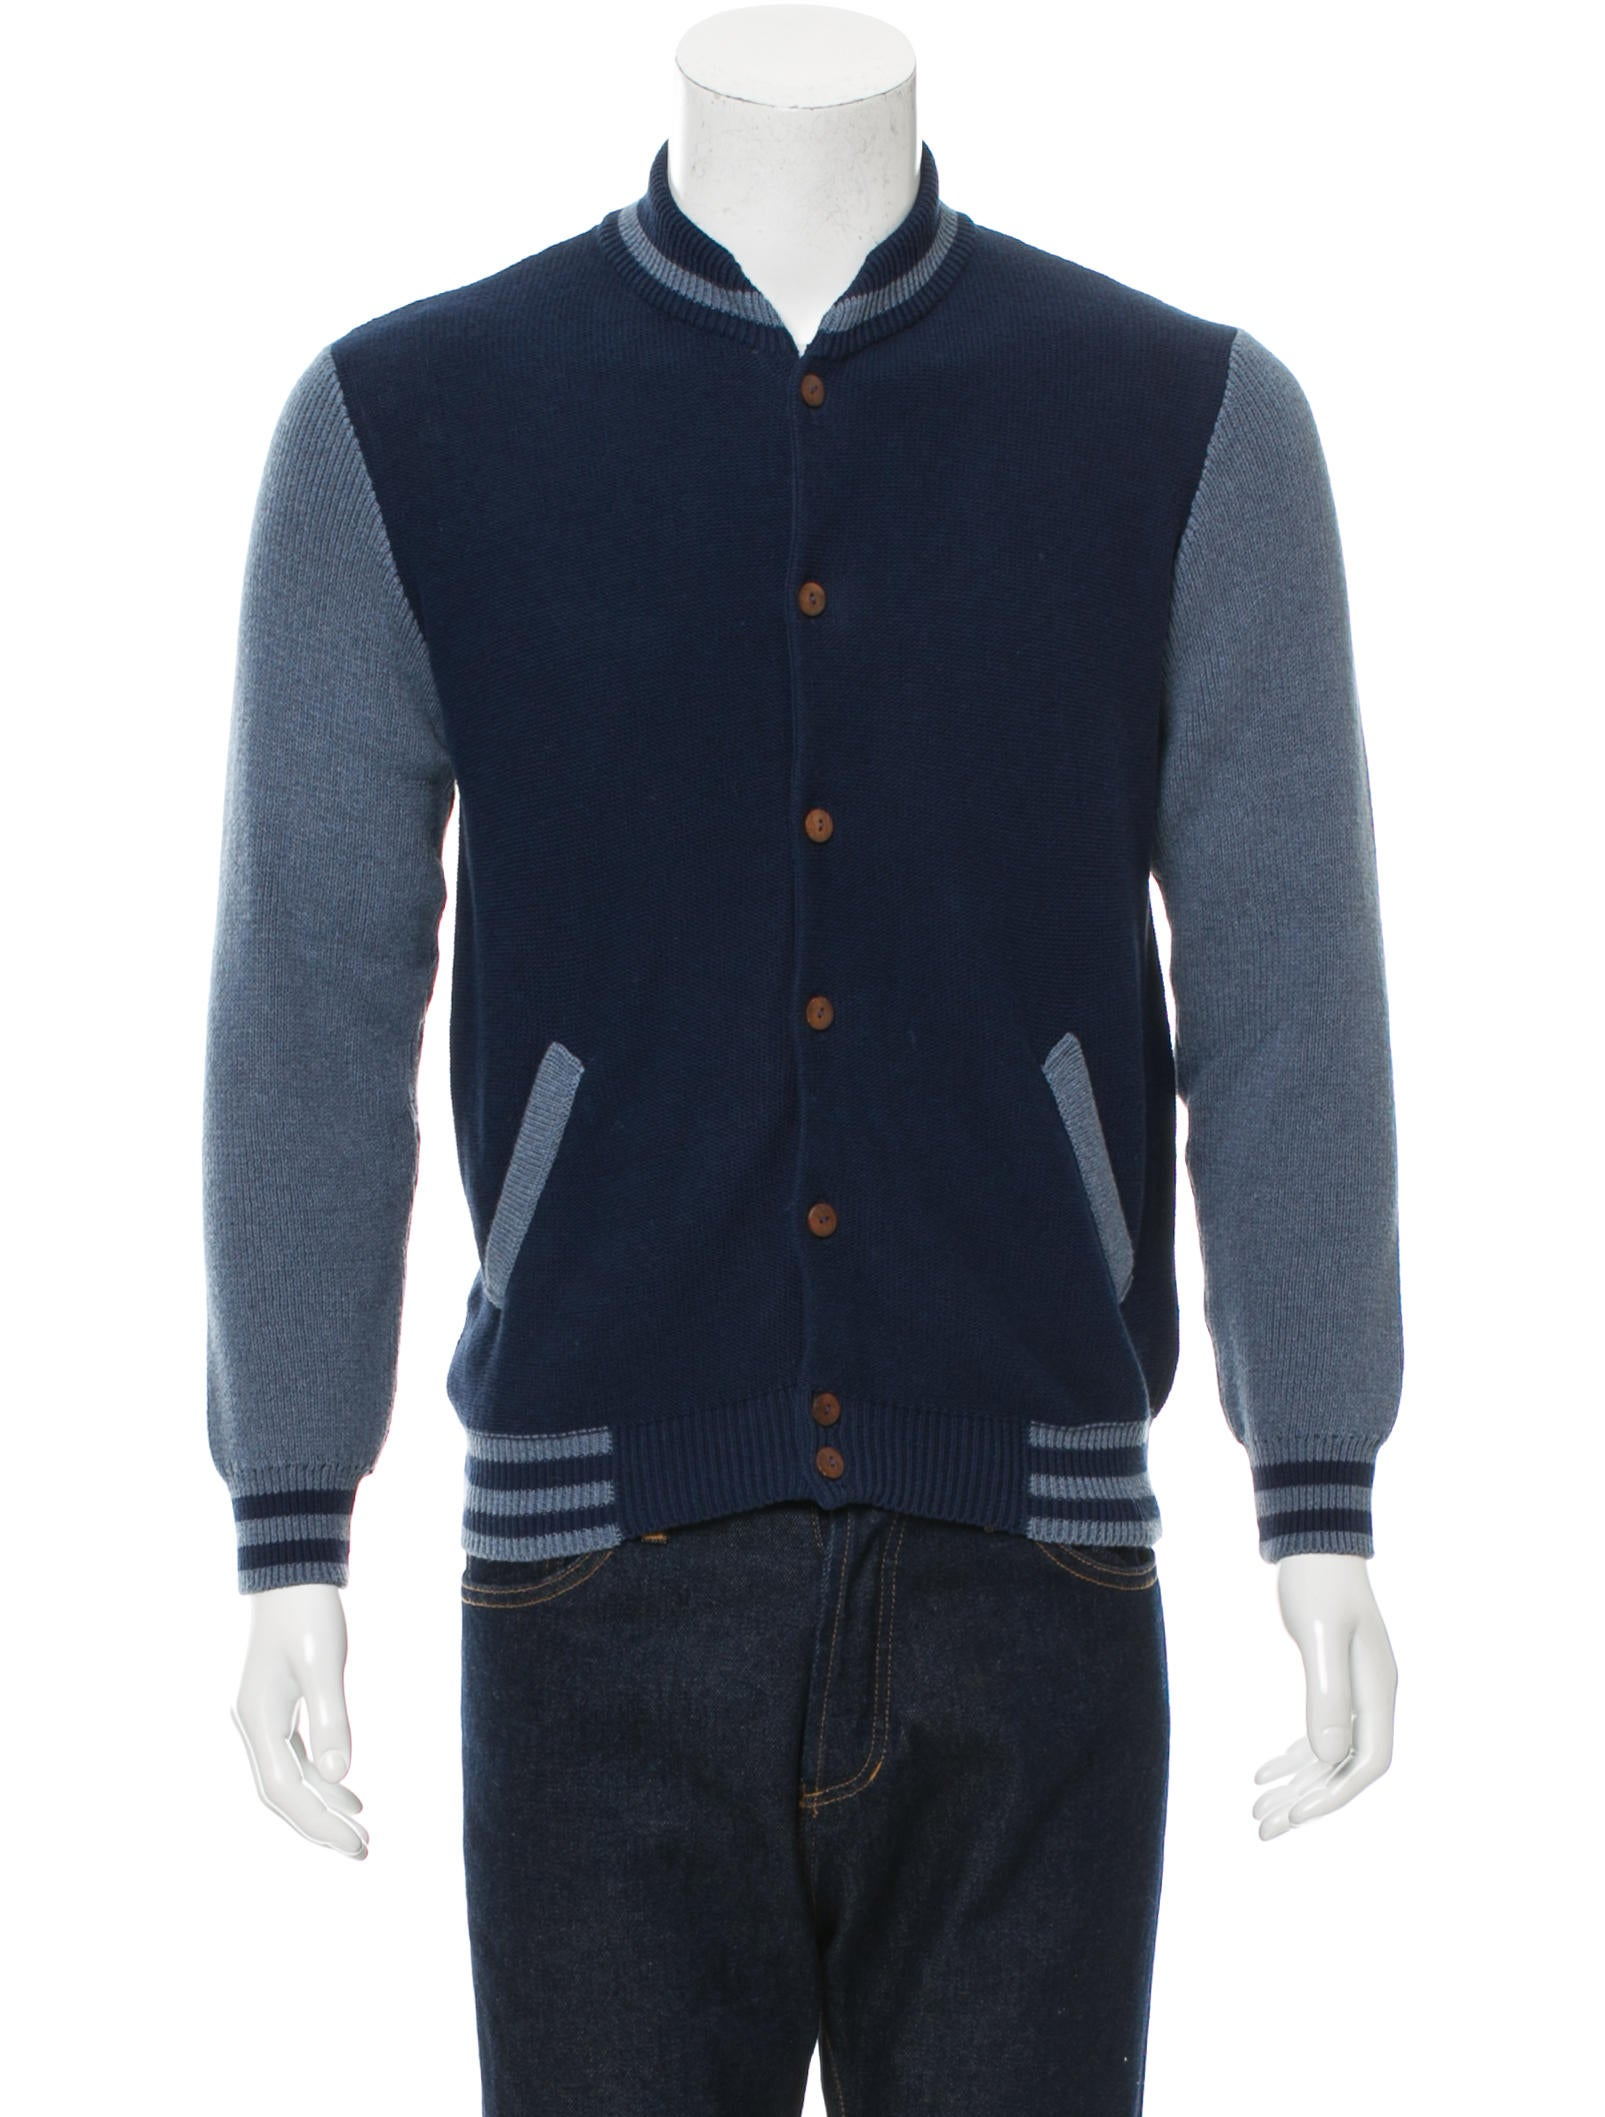 Monsieur Lacenaire Teddy Knit Varsity Jacket w/ Tags - Clothing - MLC20037 ...